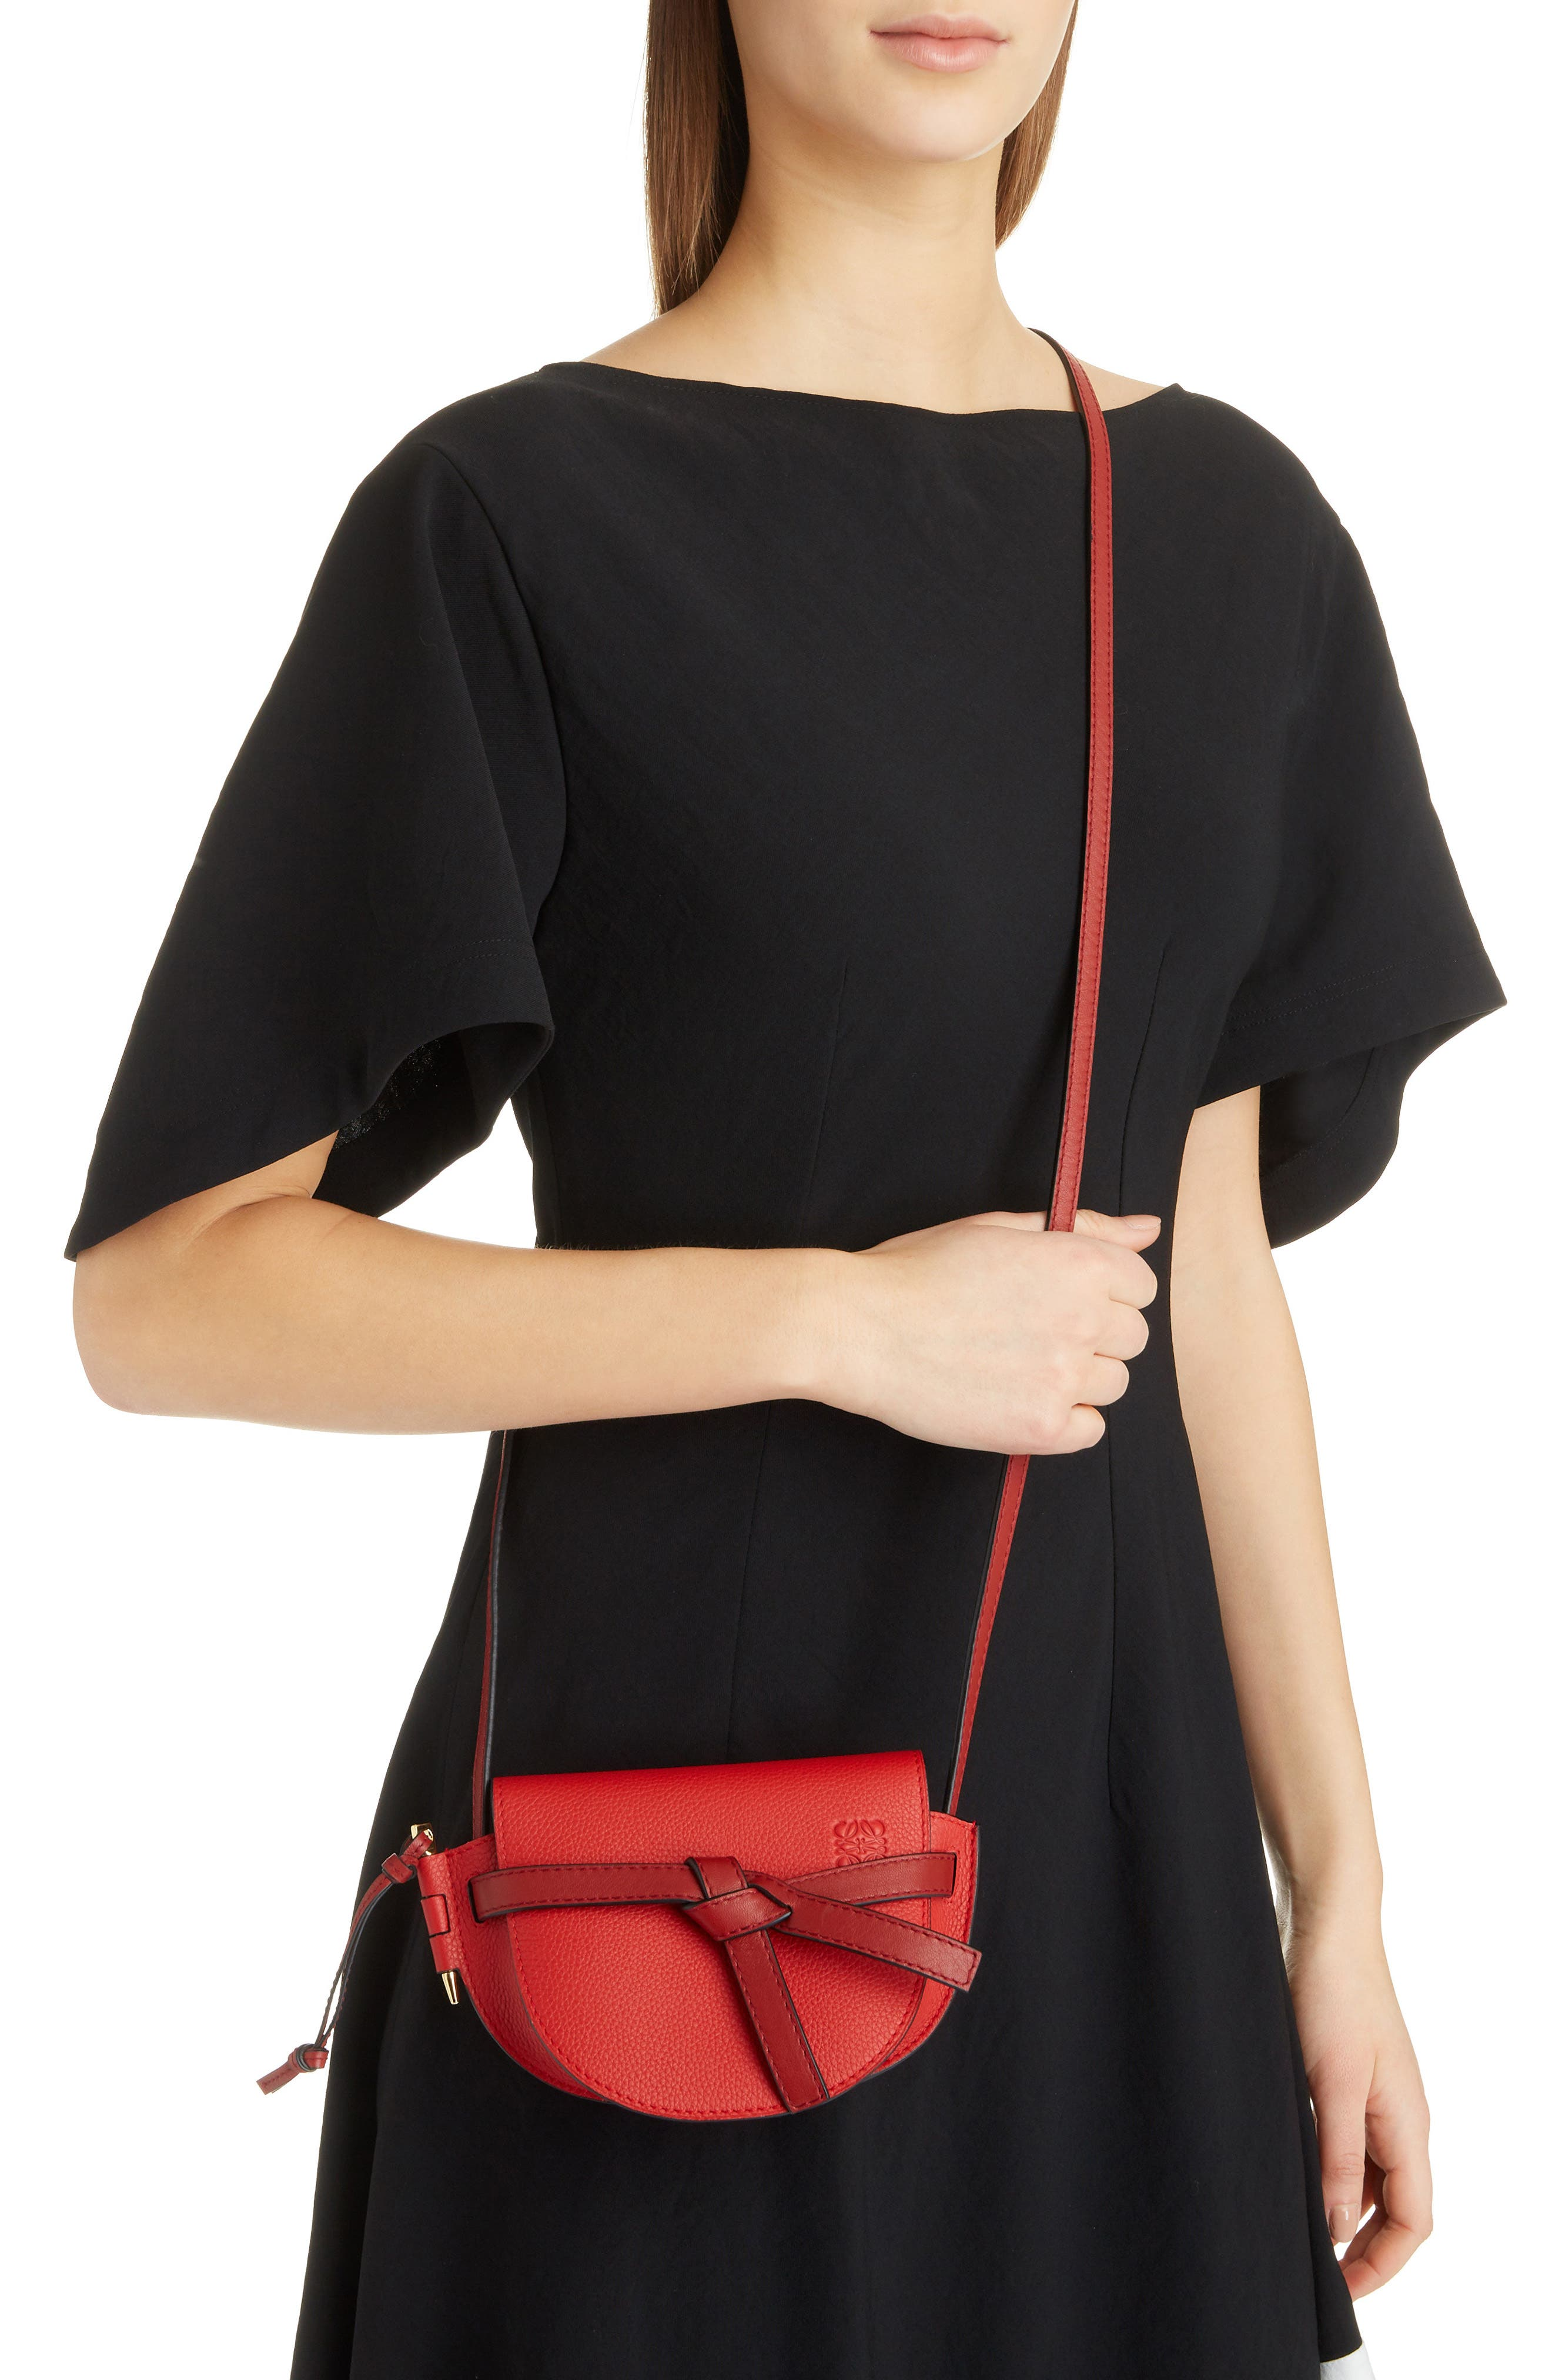 Small Gate Leather Crossbody Bag,                             Alternate thumbnail 2, color,                             SCARLET RED/ BURNT RED